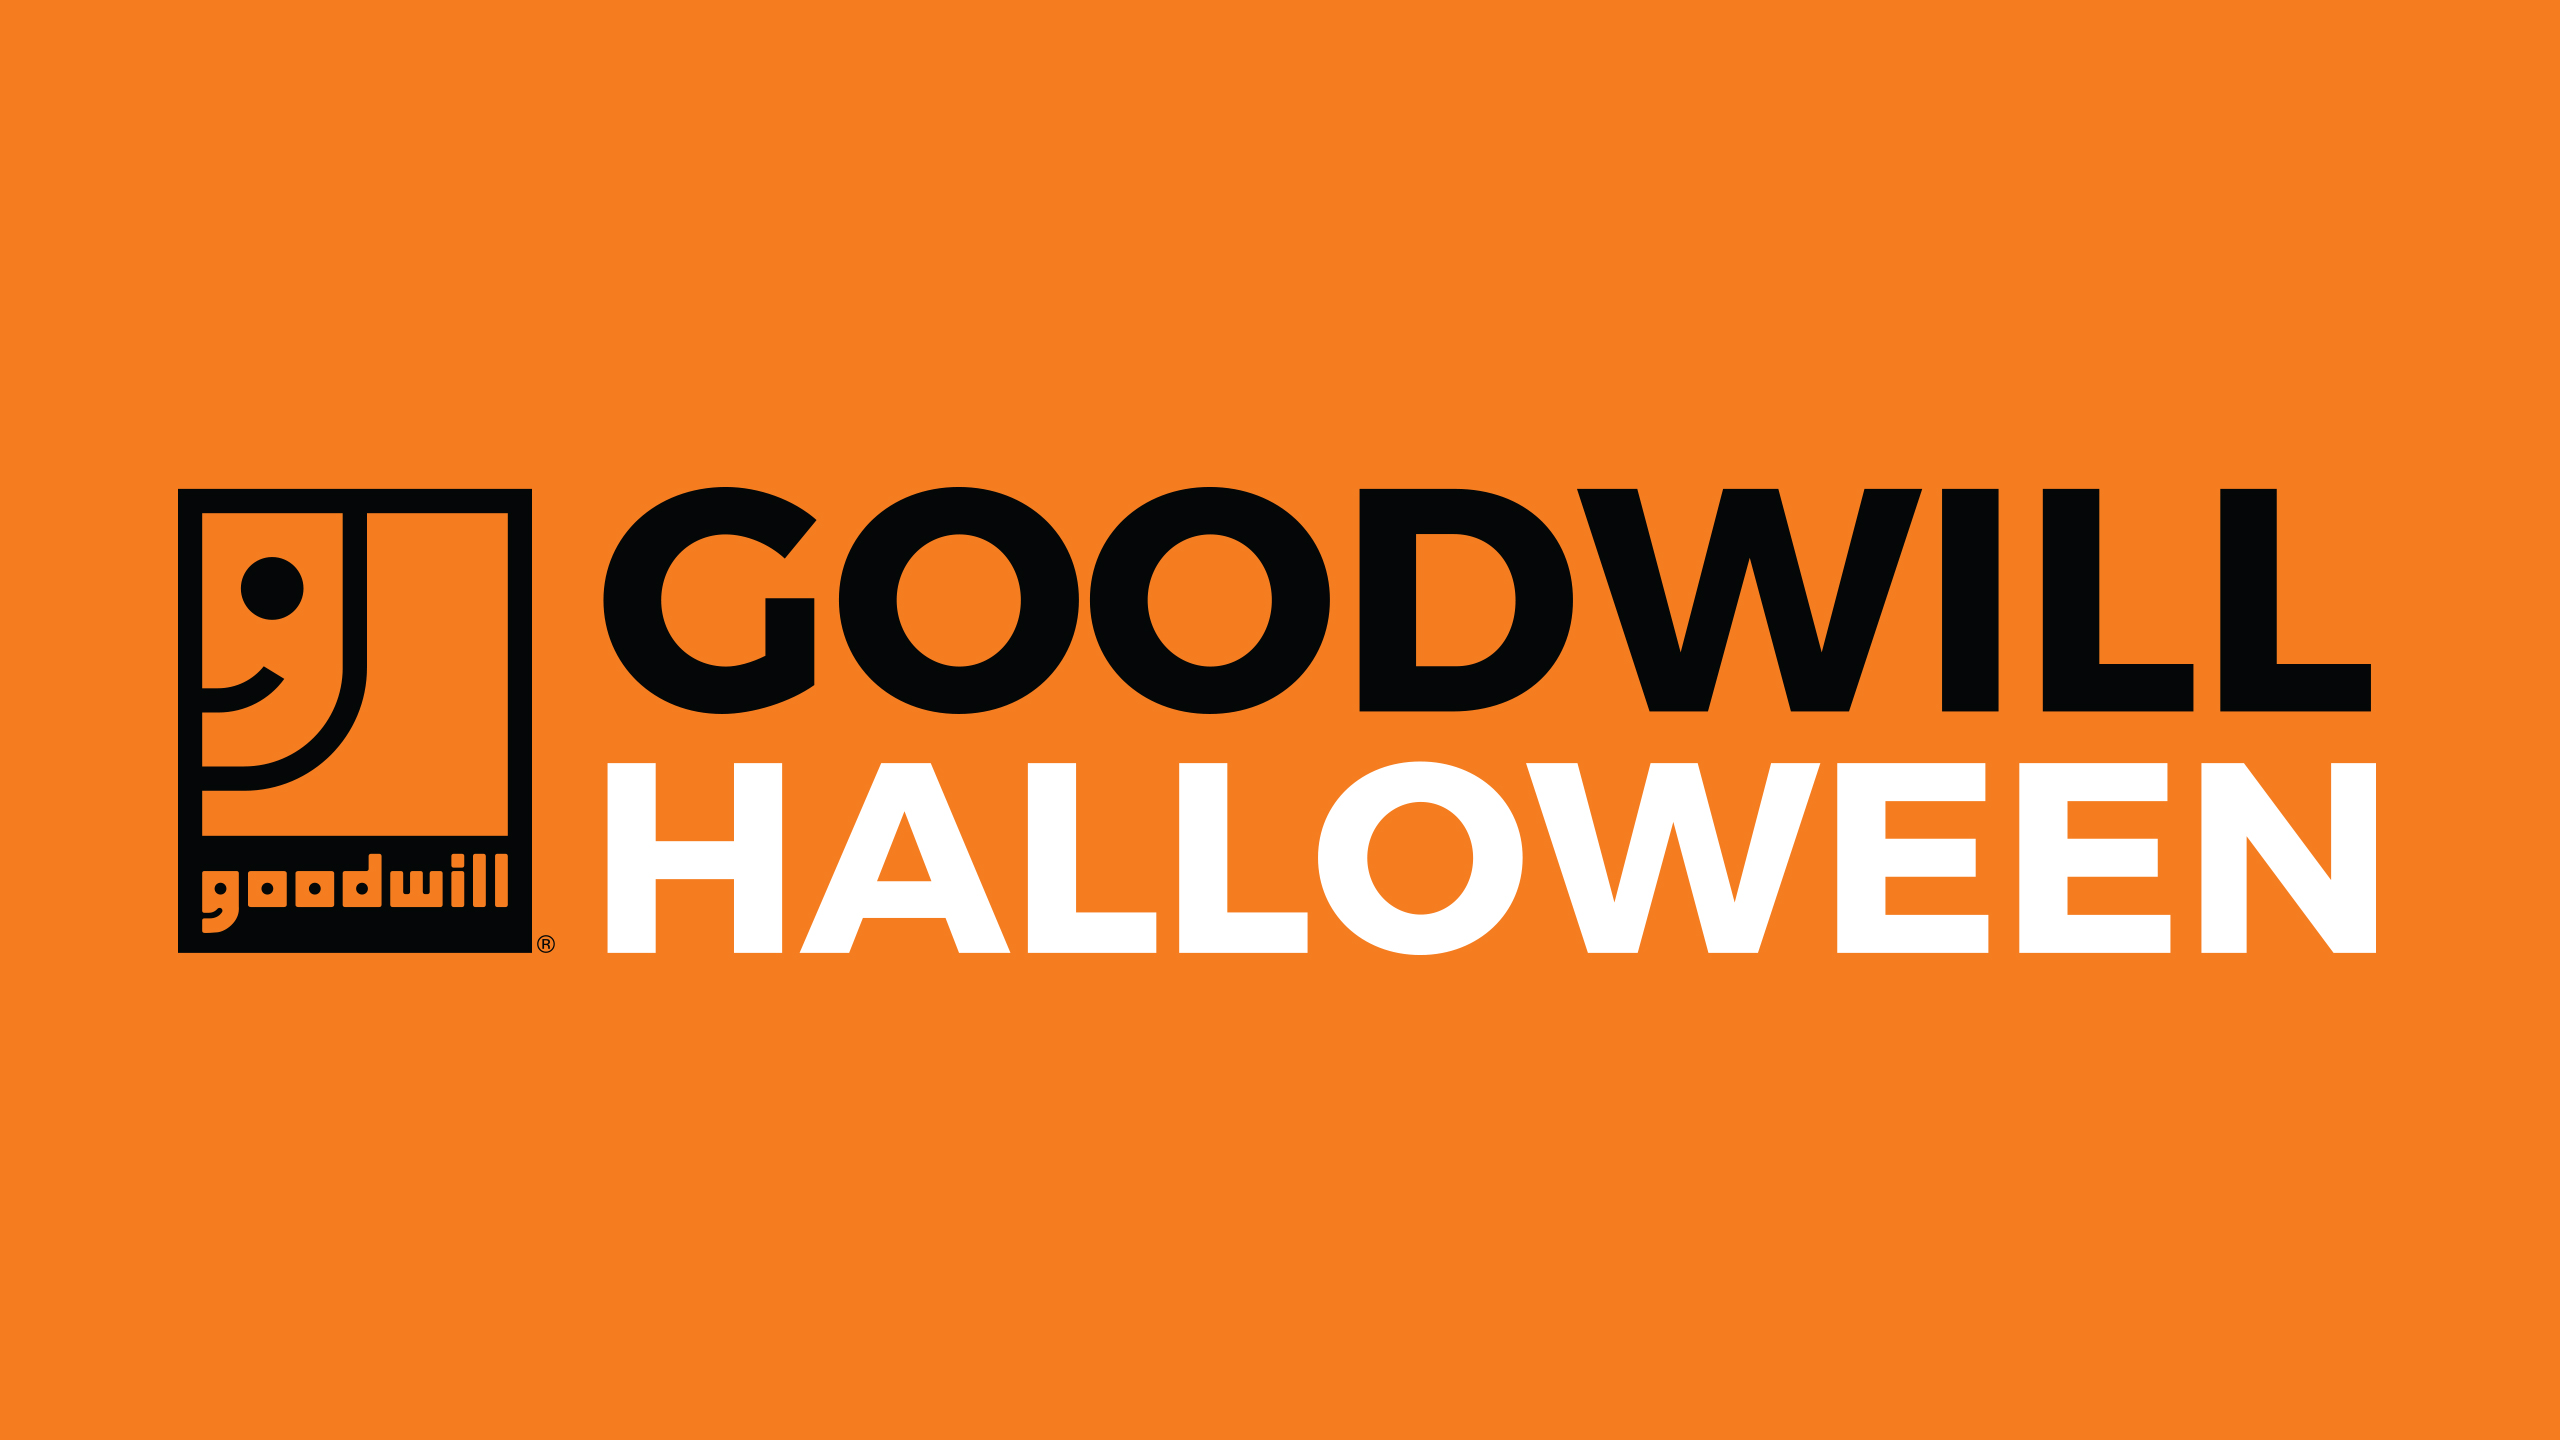 Goodwill Halloween ORC Poll: Half of American households will participate in Halloween festivities